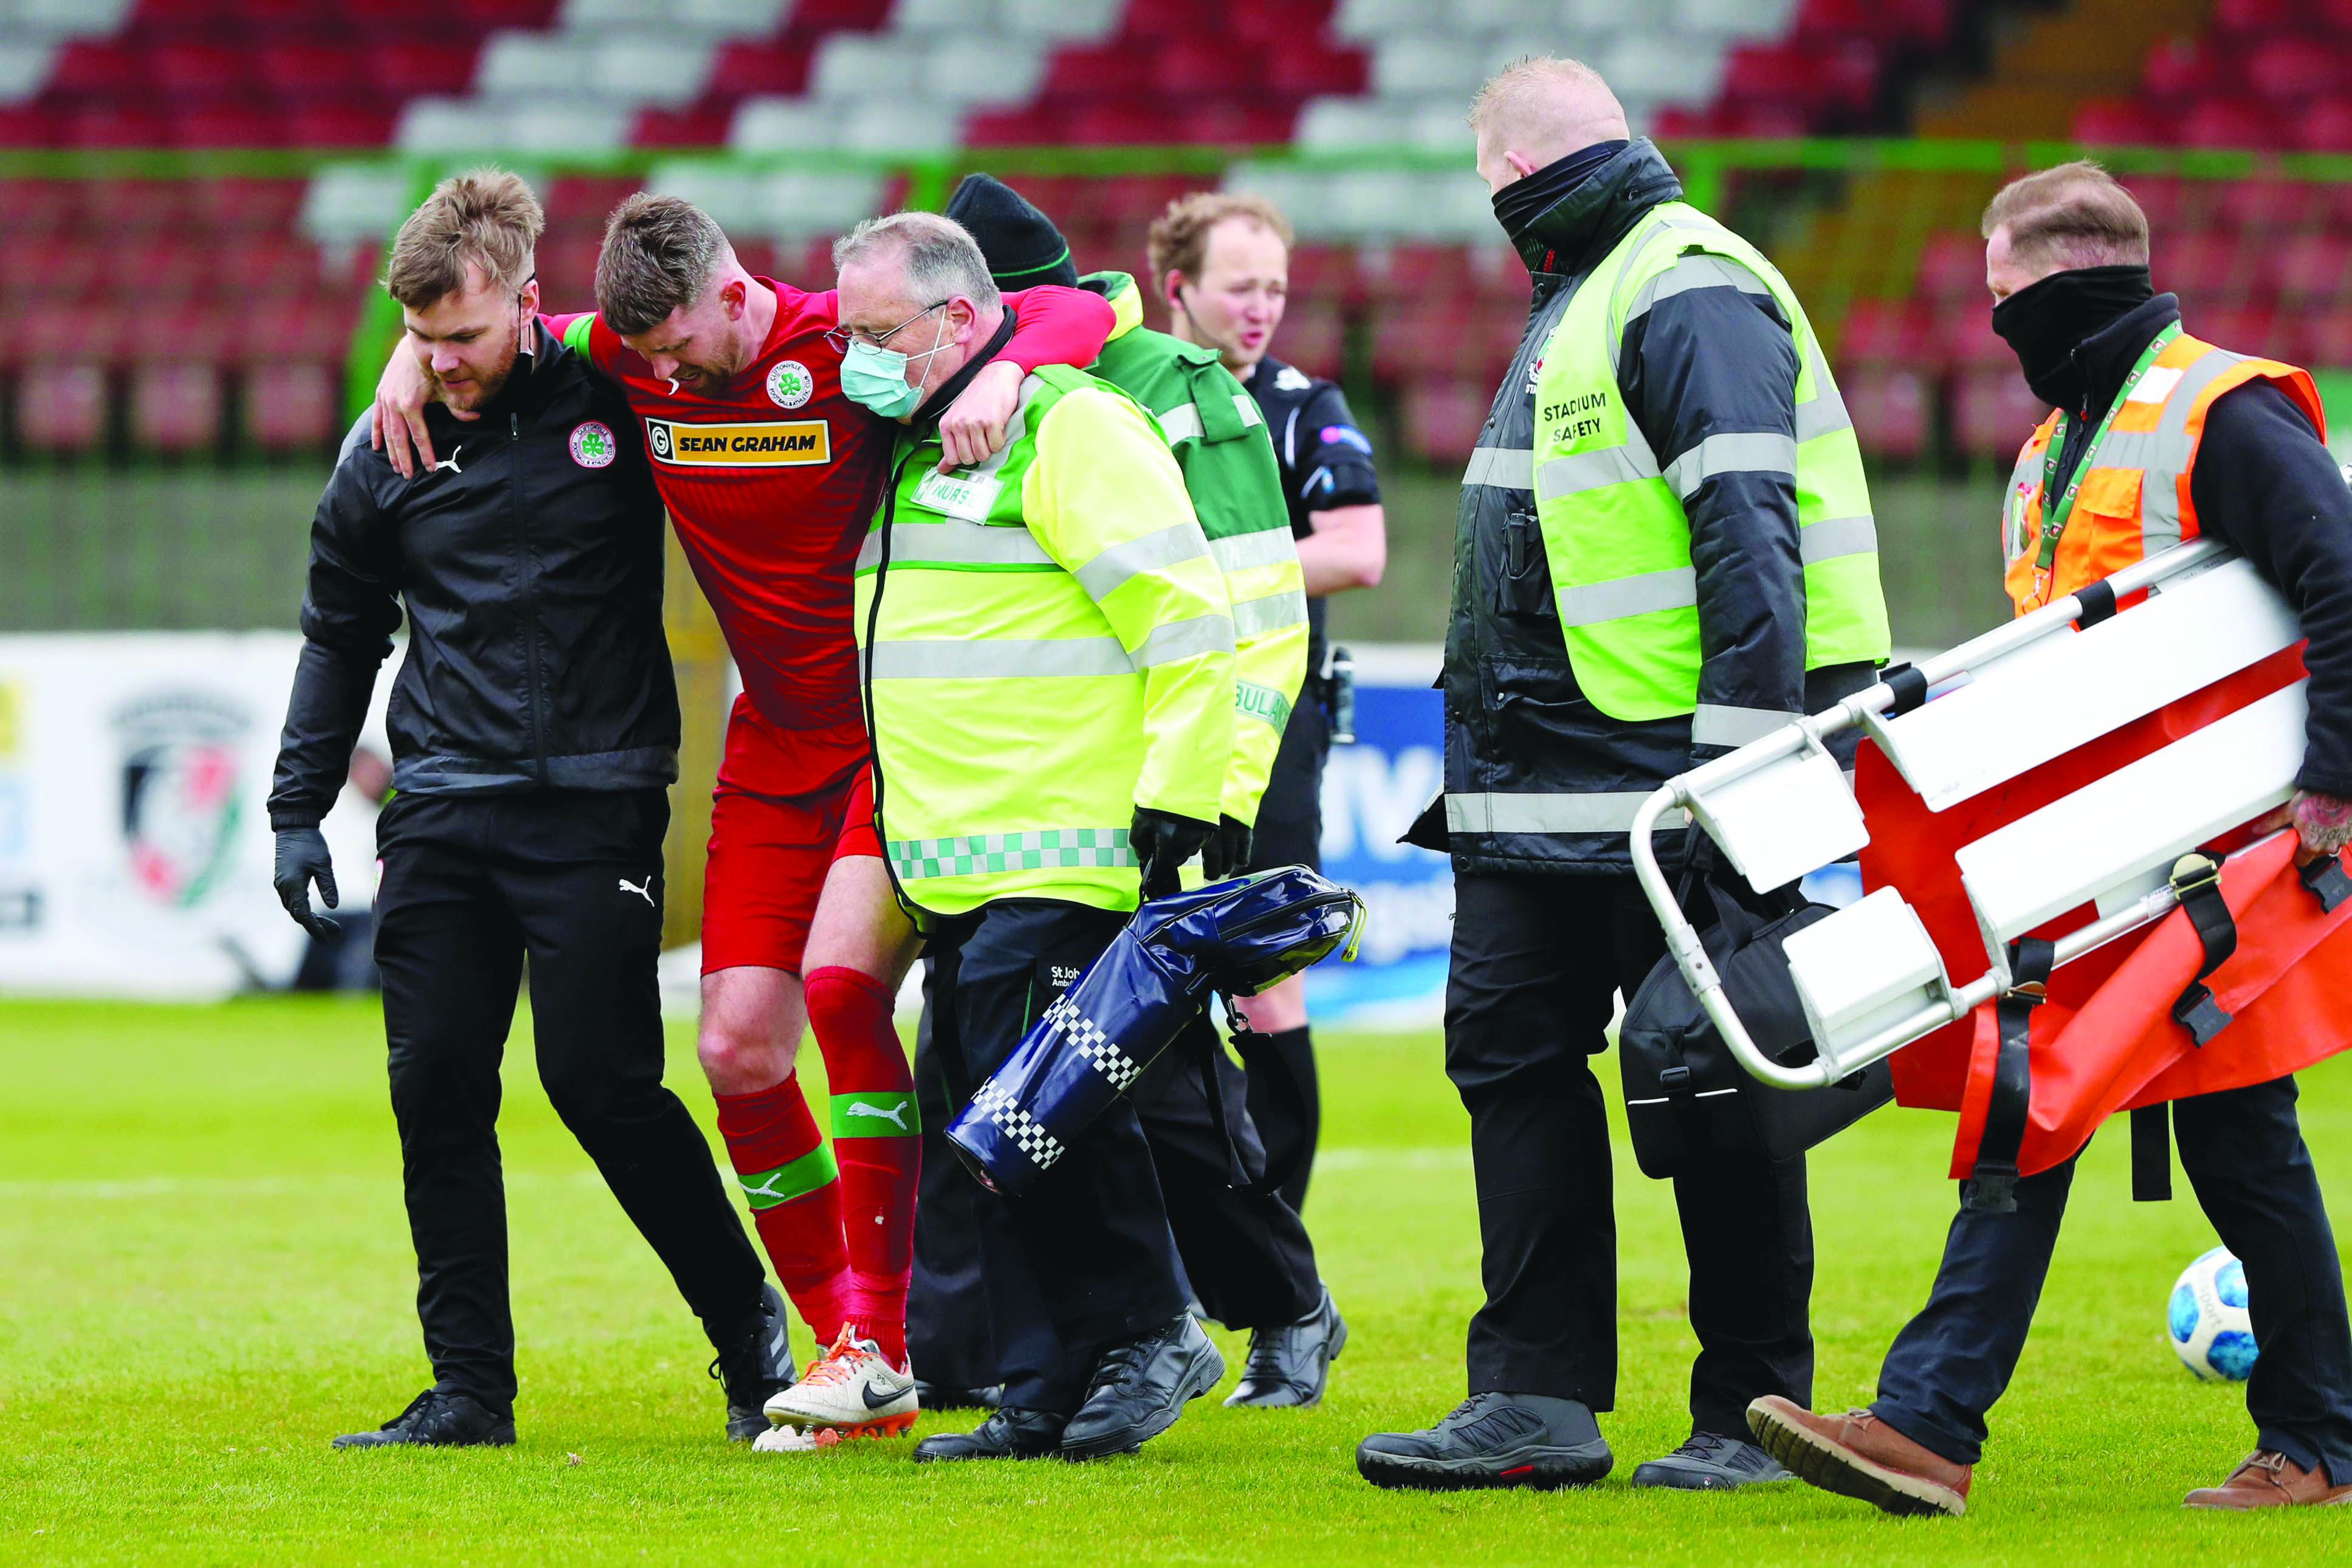 Garry Breen is the latest player on the injury list after hobbling out against Glentoran